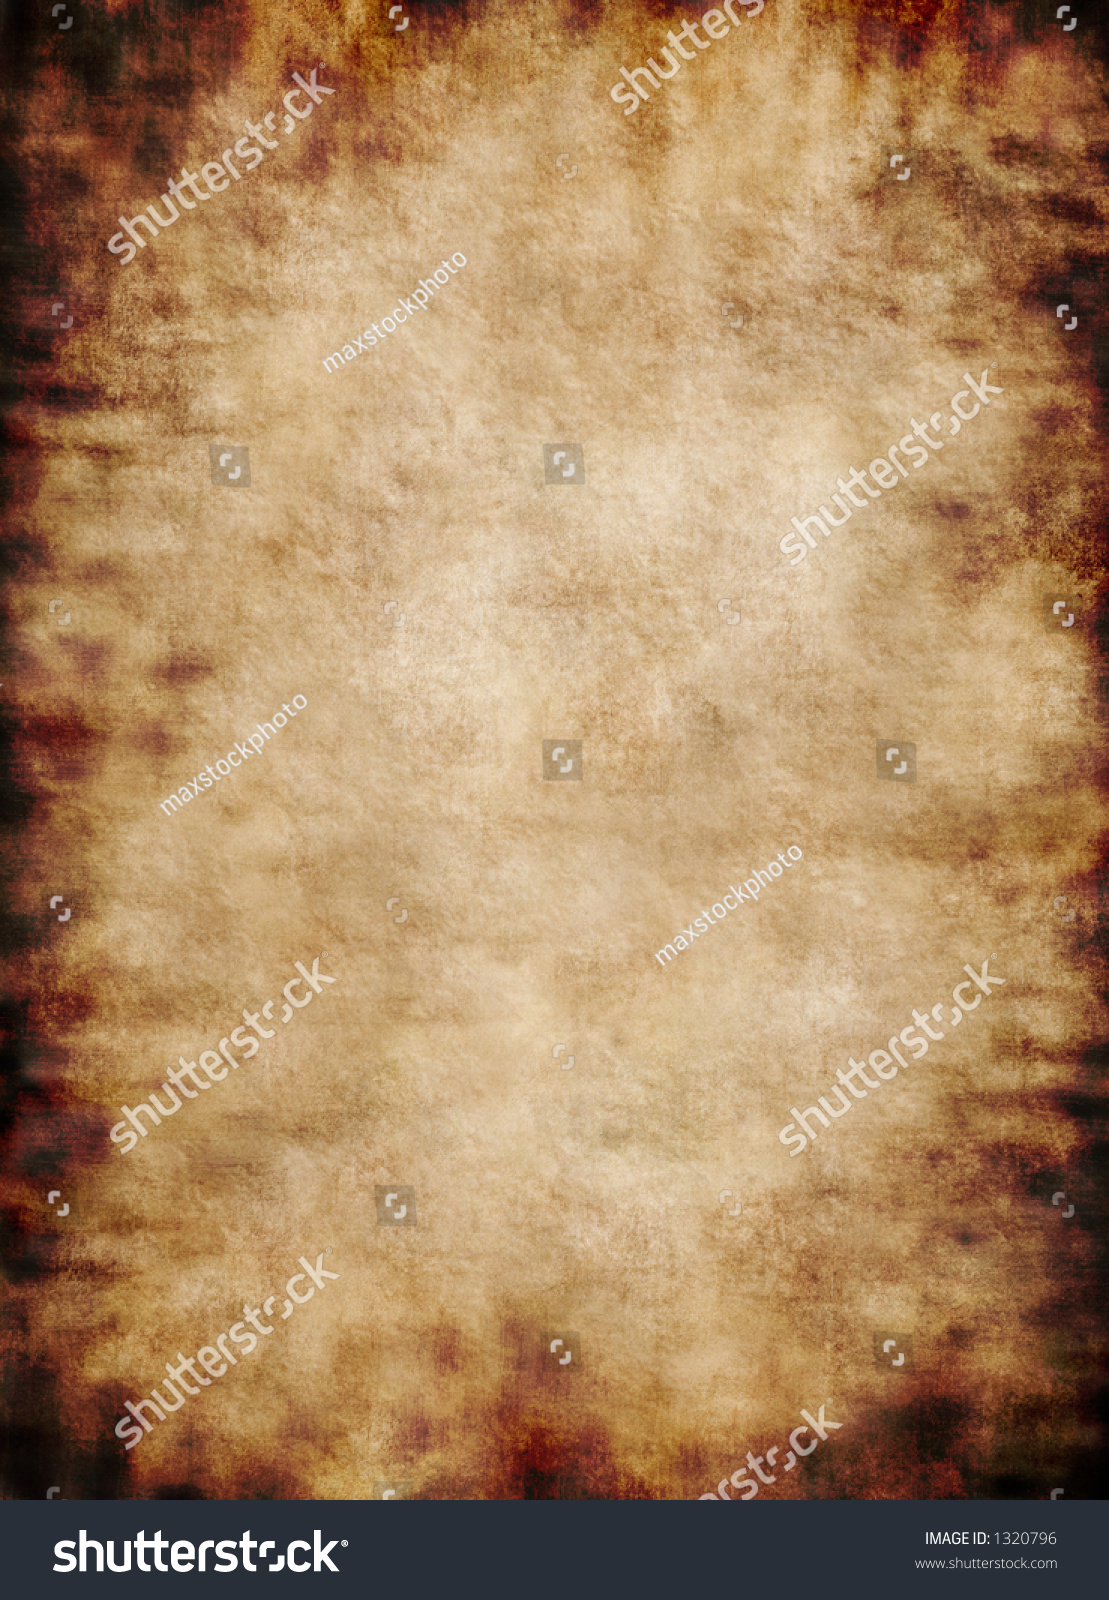 Old Rough Antique Rustic Grungy Vertical Parchment Paper Texture Background